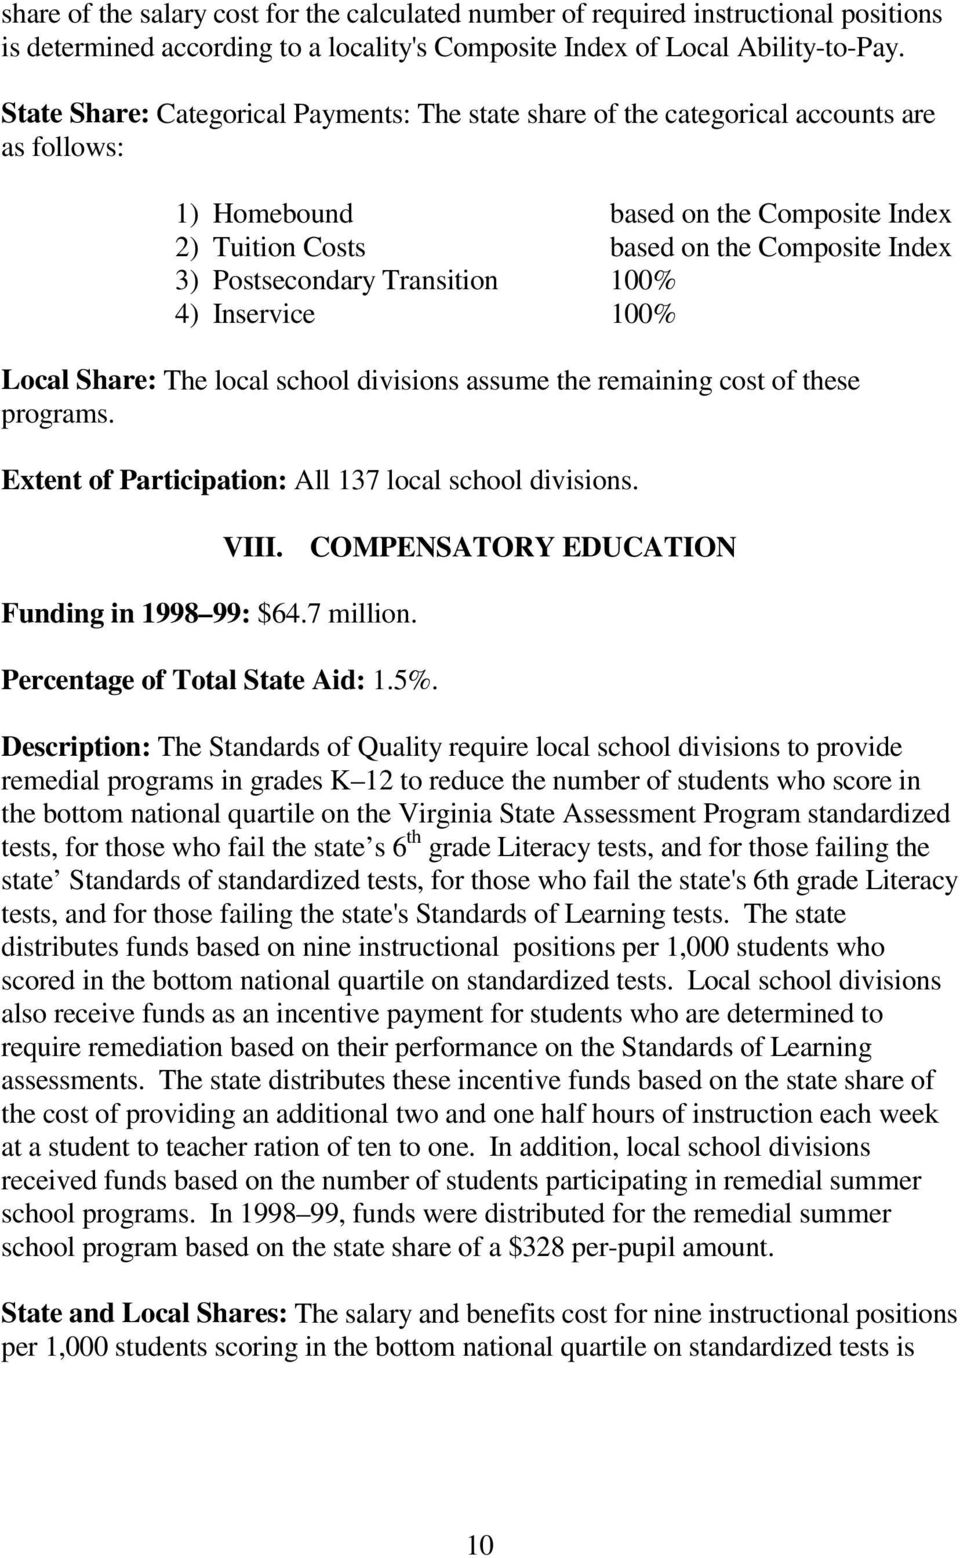 Transition 100% 4) Inservice 100% Local Share: The local school divisions assume the remaining cost of these programs. Extent of Participation: All 137 local school divisions. Funding in 1998 99: $64.